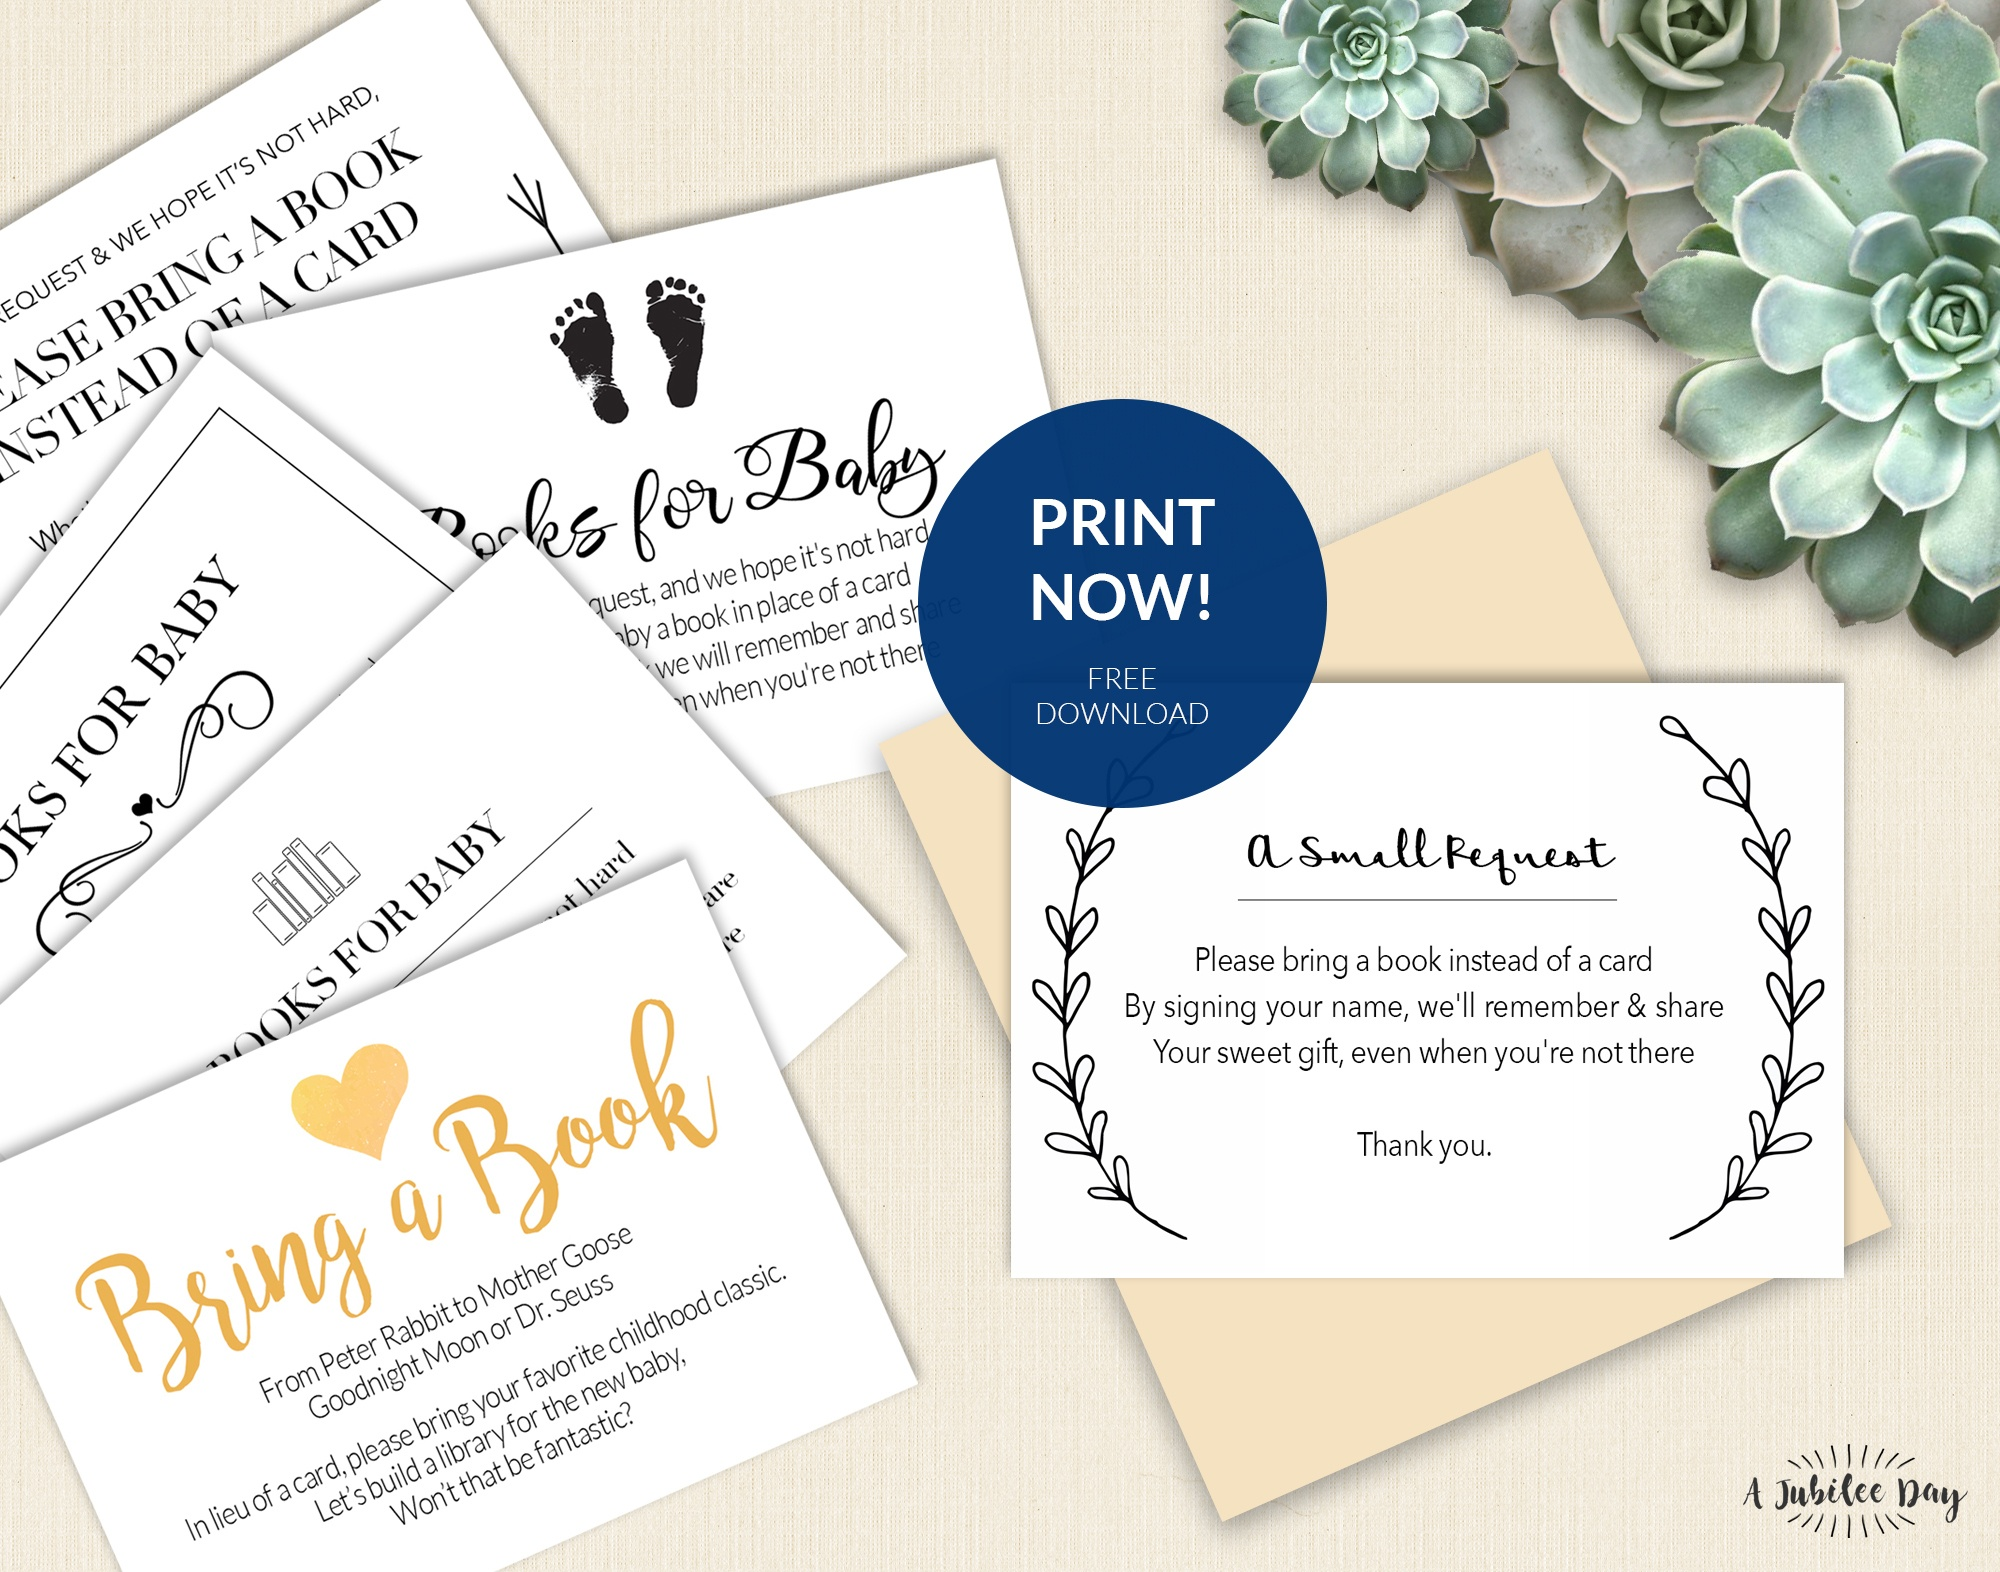 Bring A Book Instead Of Card (Free Printable!) - A Jubilee Day - Cards Sign Free Printable